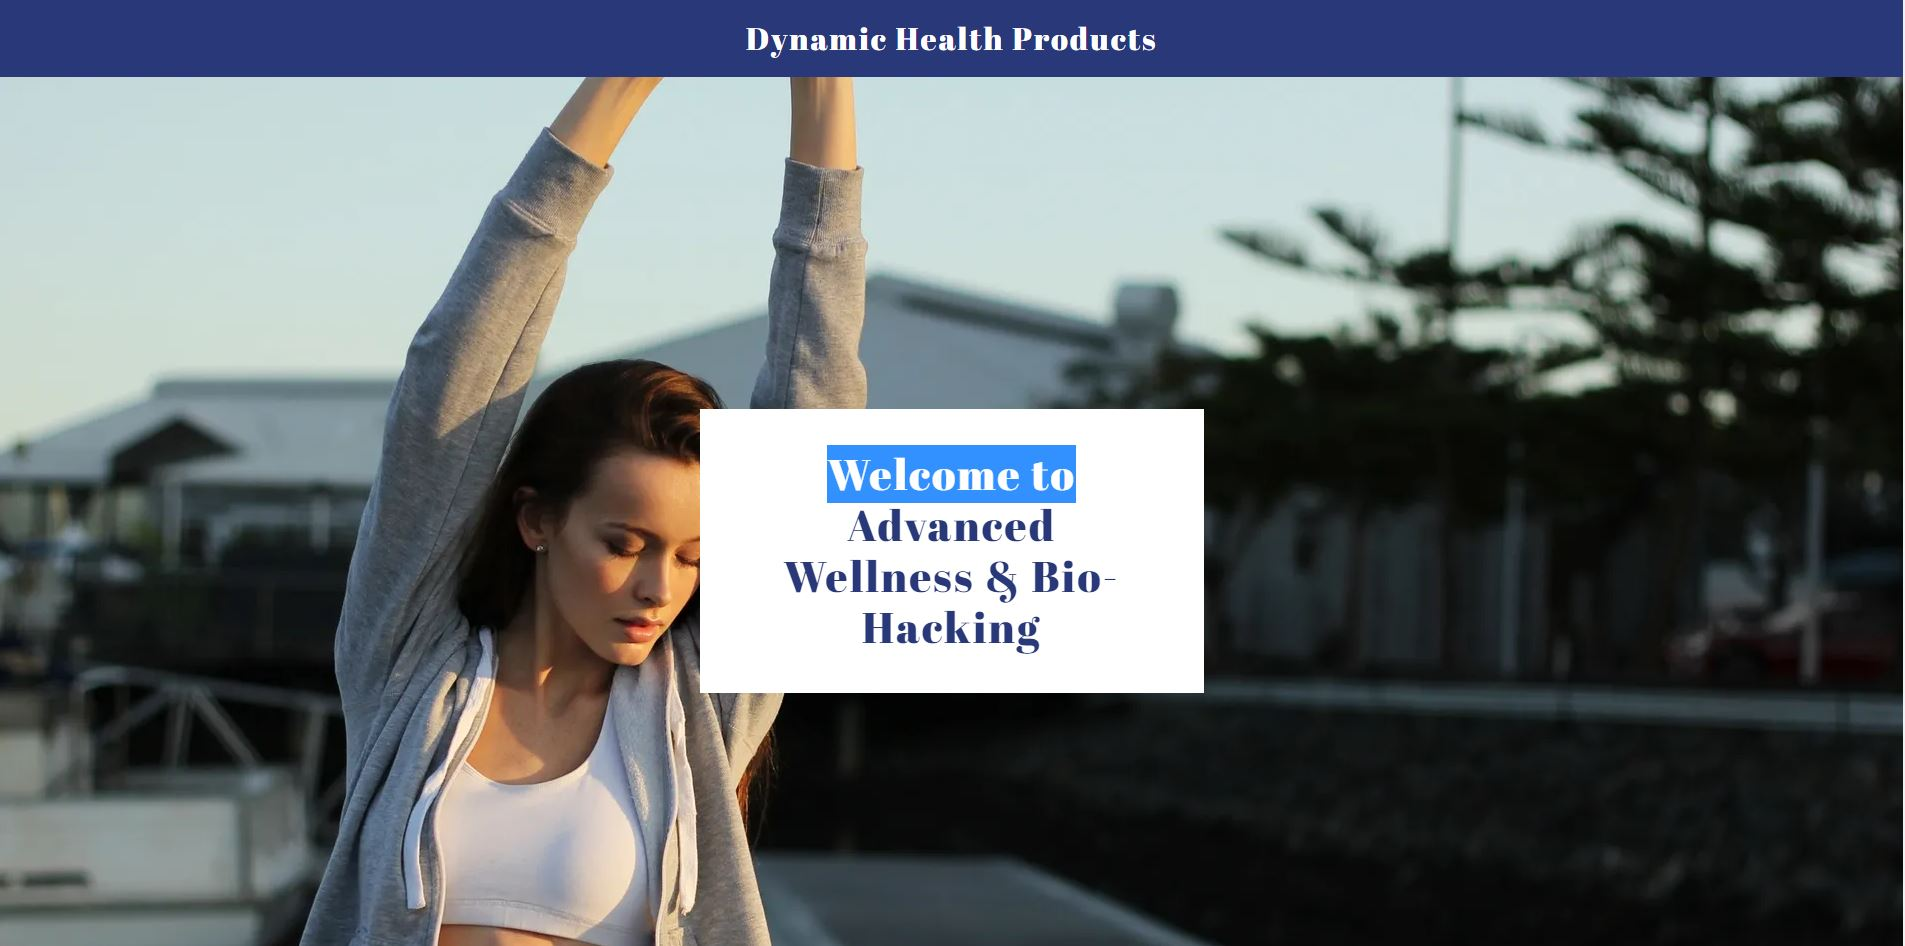 DynamicHealthProducts.JPG